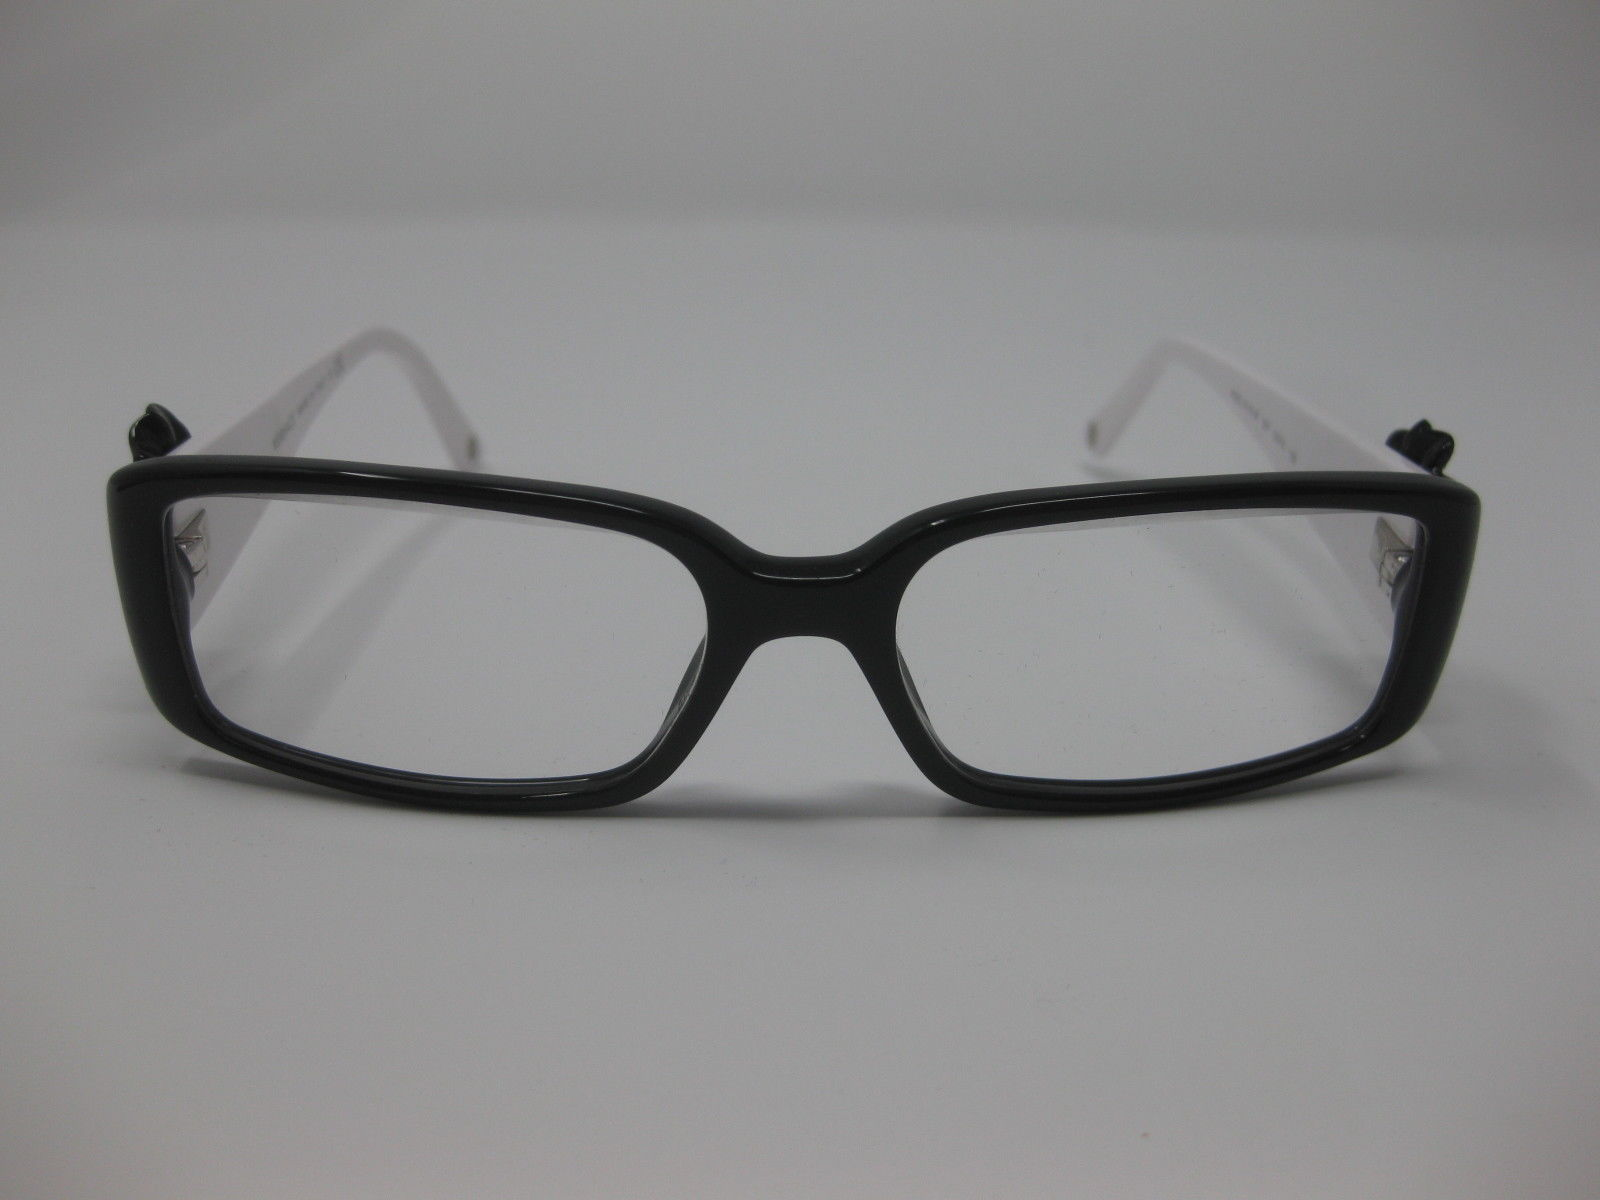 c22223891a105 Versace 3115-B Eyeglasses Frames Crystal Flower Demo Lens 52 15 135 Black  White